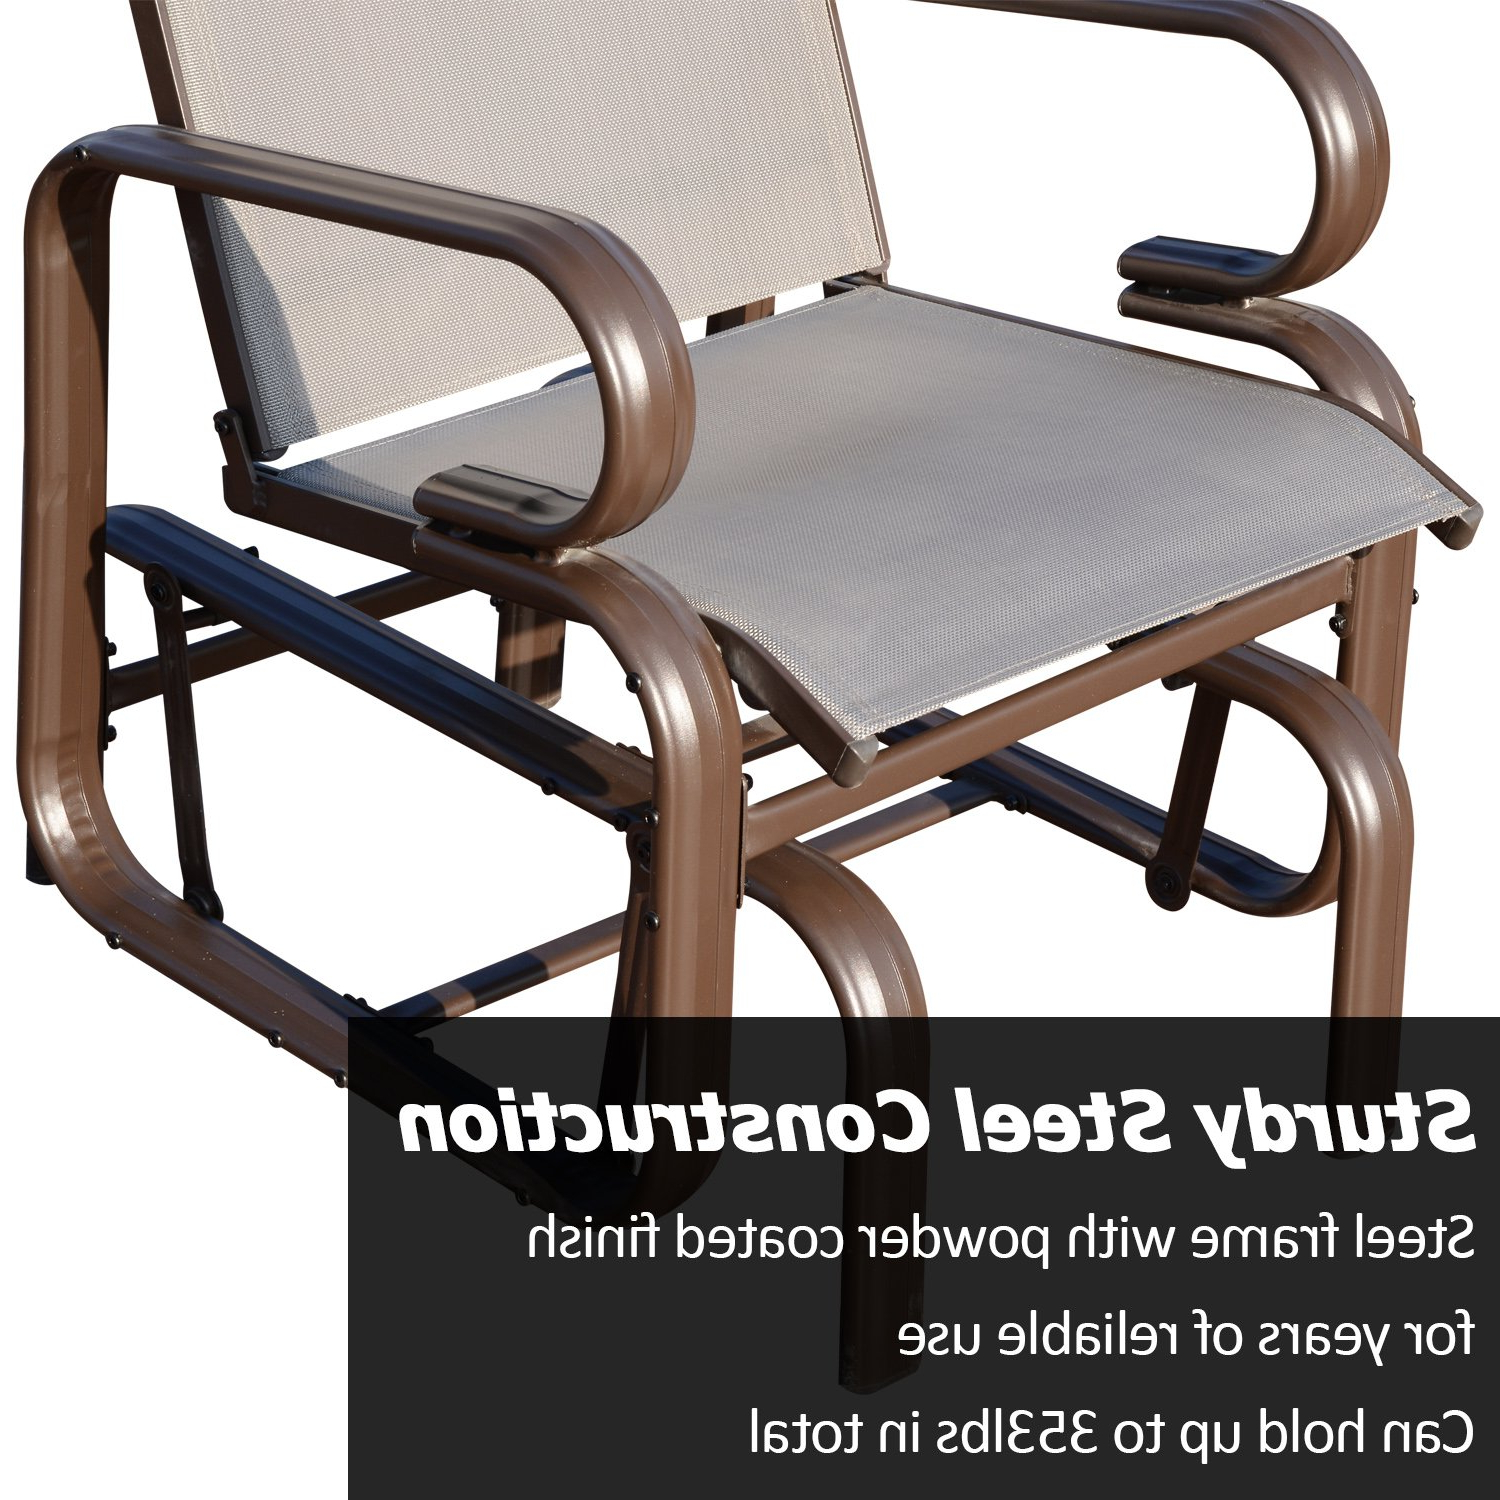 Outdoor Swing Glider Chairs With Powder Coated Steel Frame Intended For Most Popular Outsunny Glider Rocking Chair Single Seater Rocker Seat (Gallery 21 of 30)